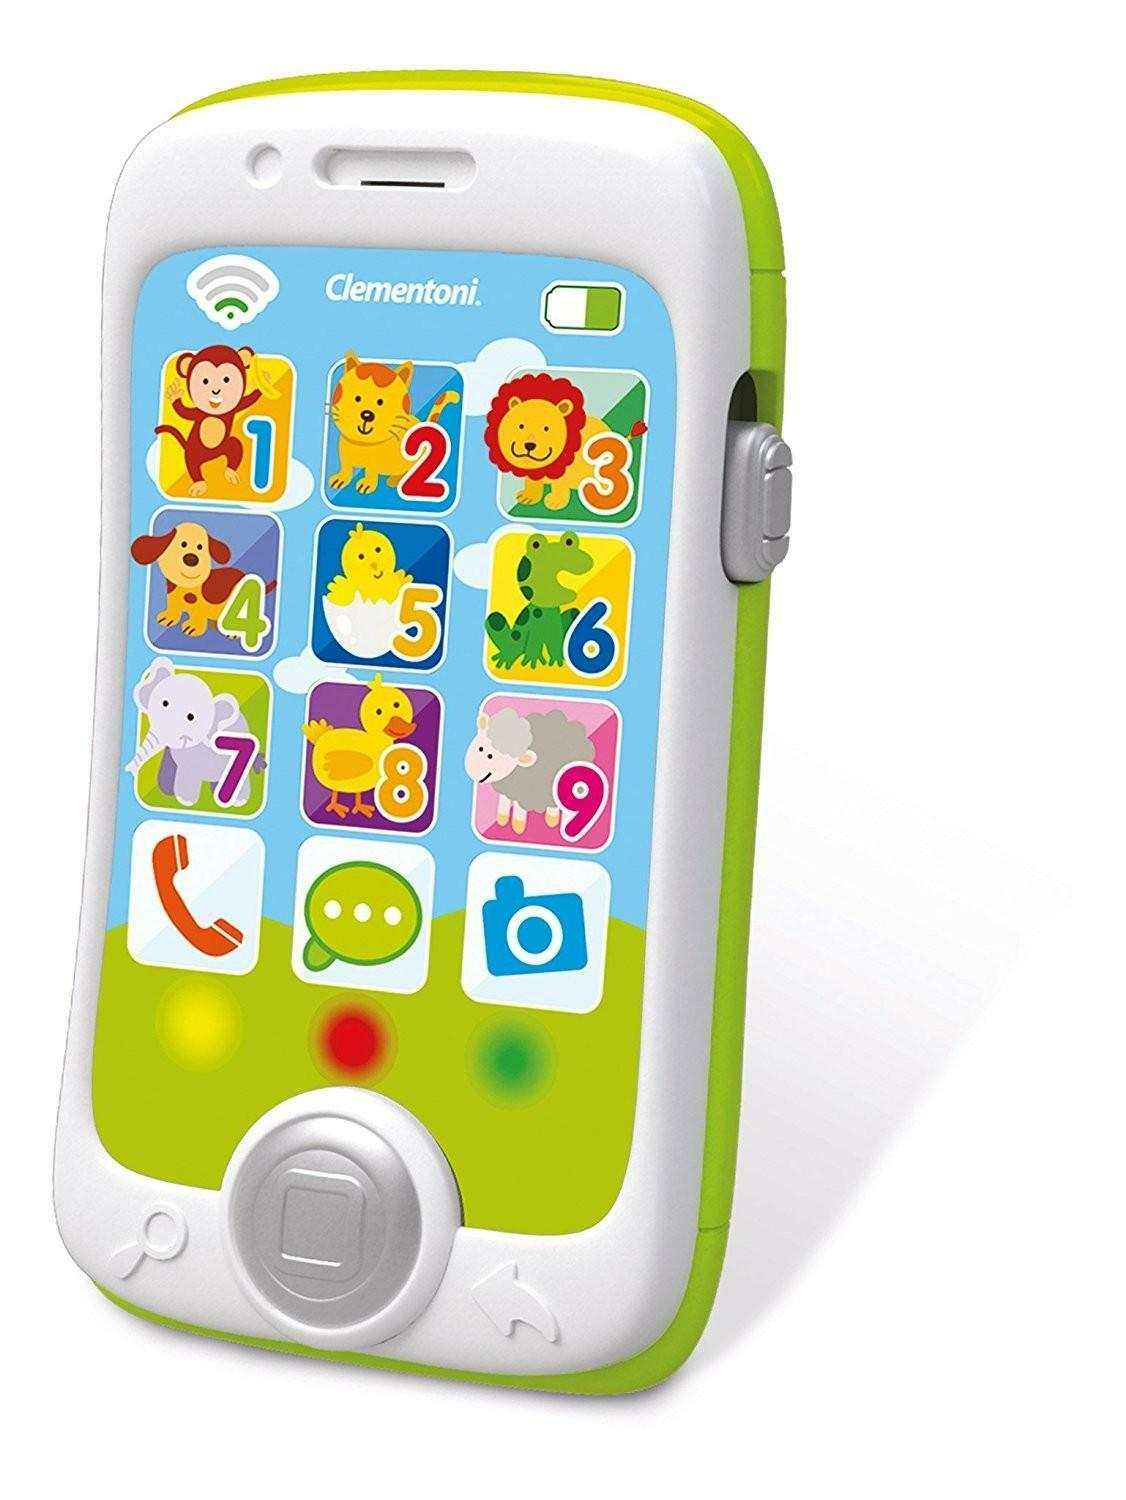 clementoni clementoni smartphone touch & play 14969